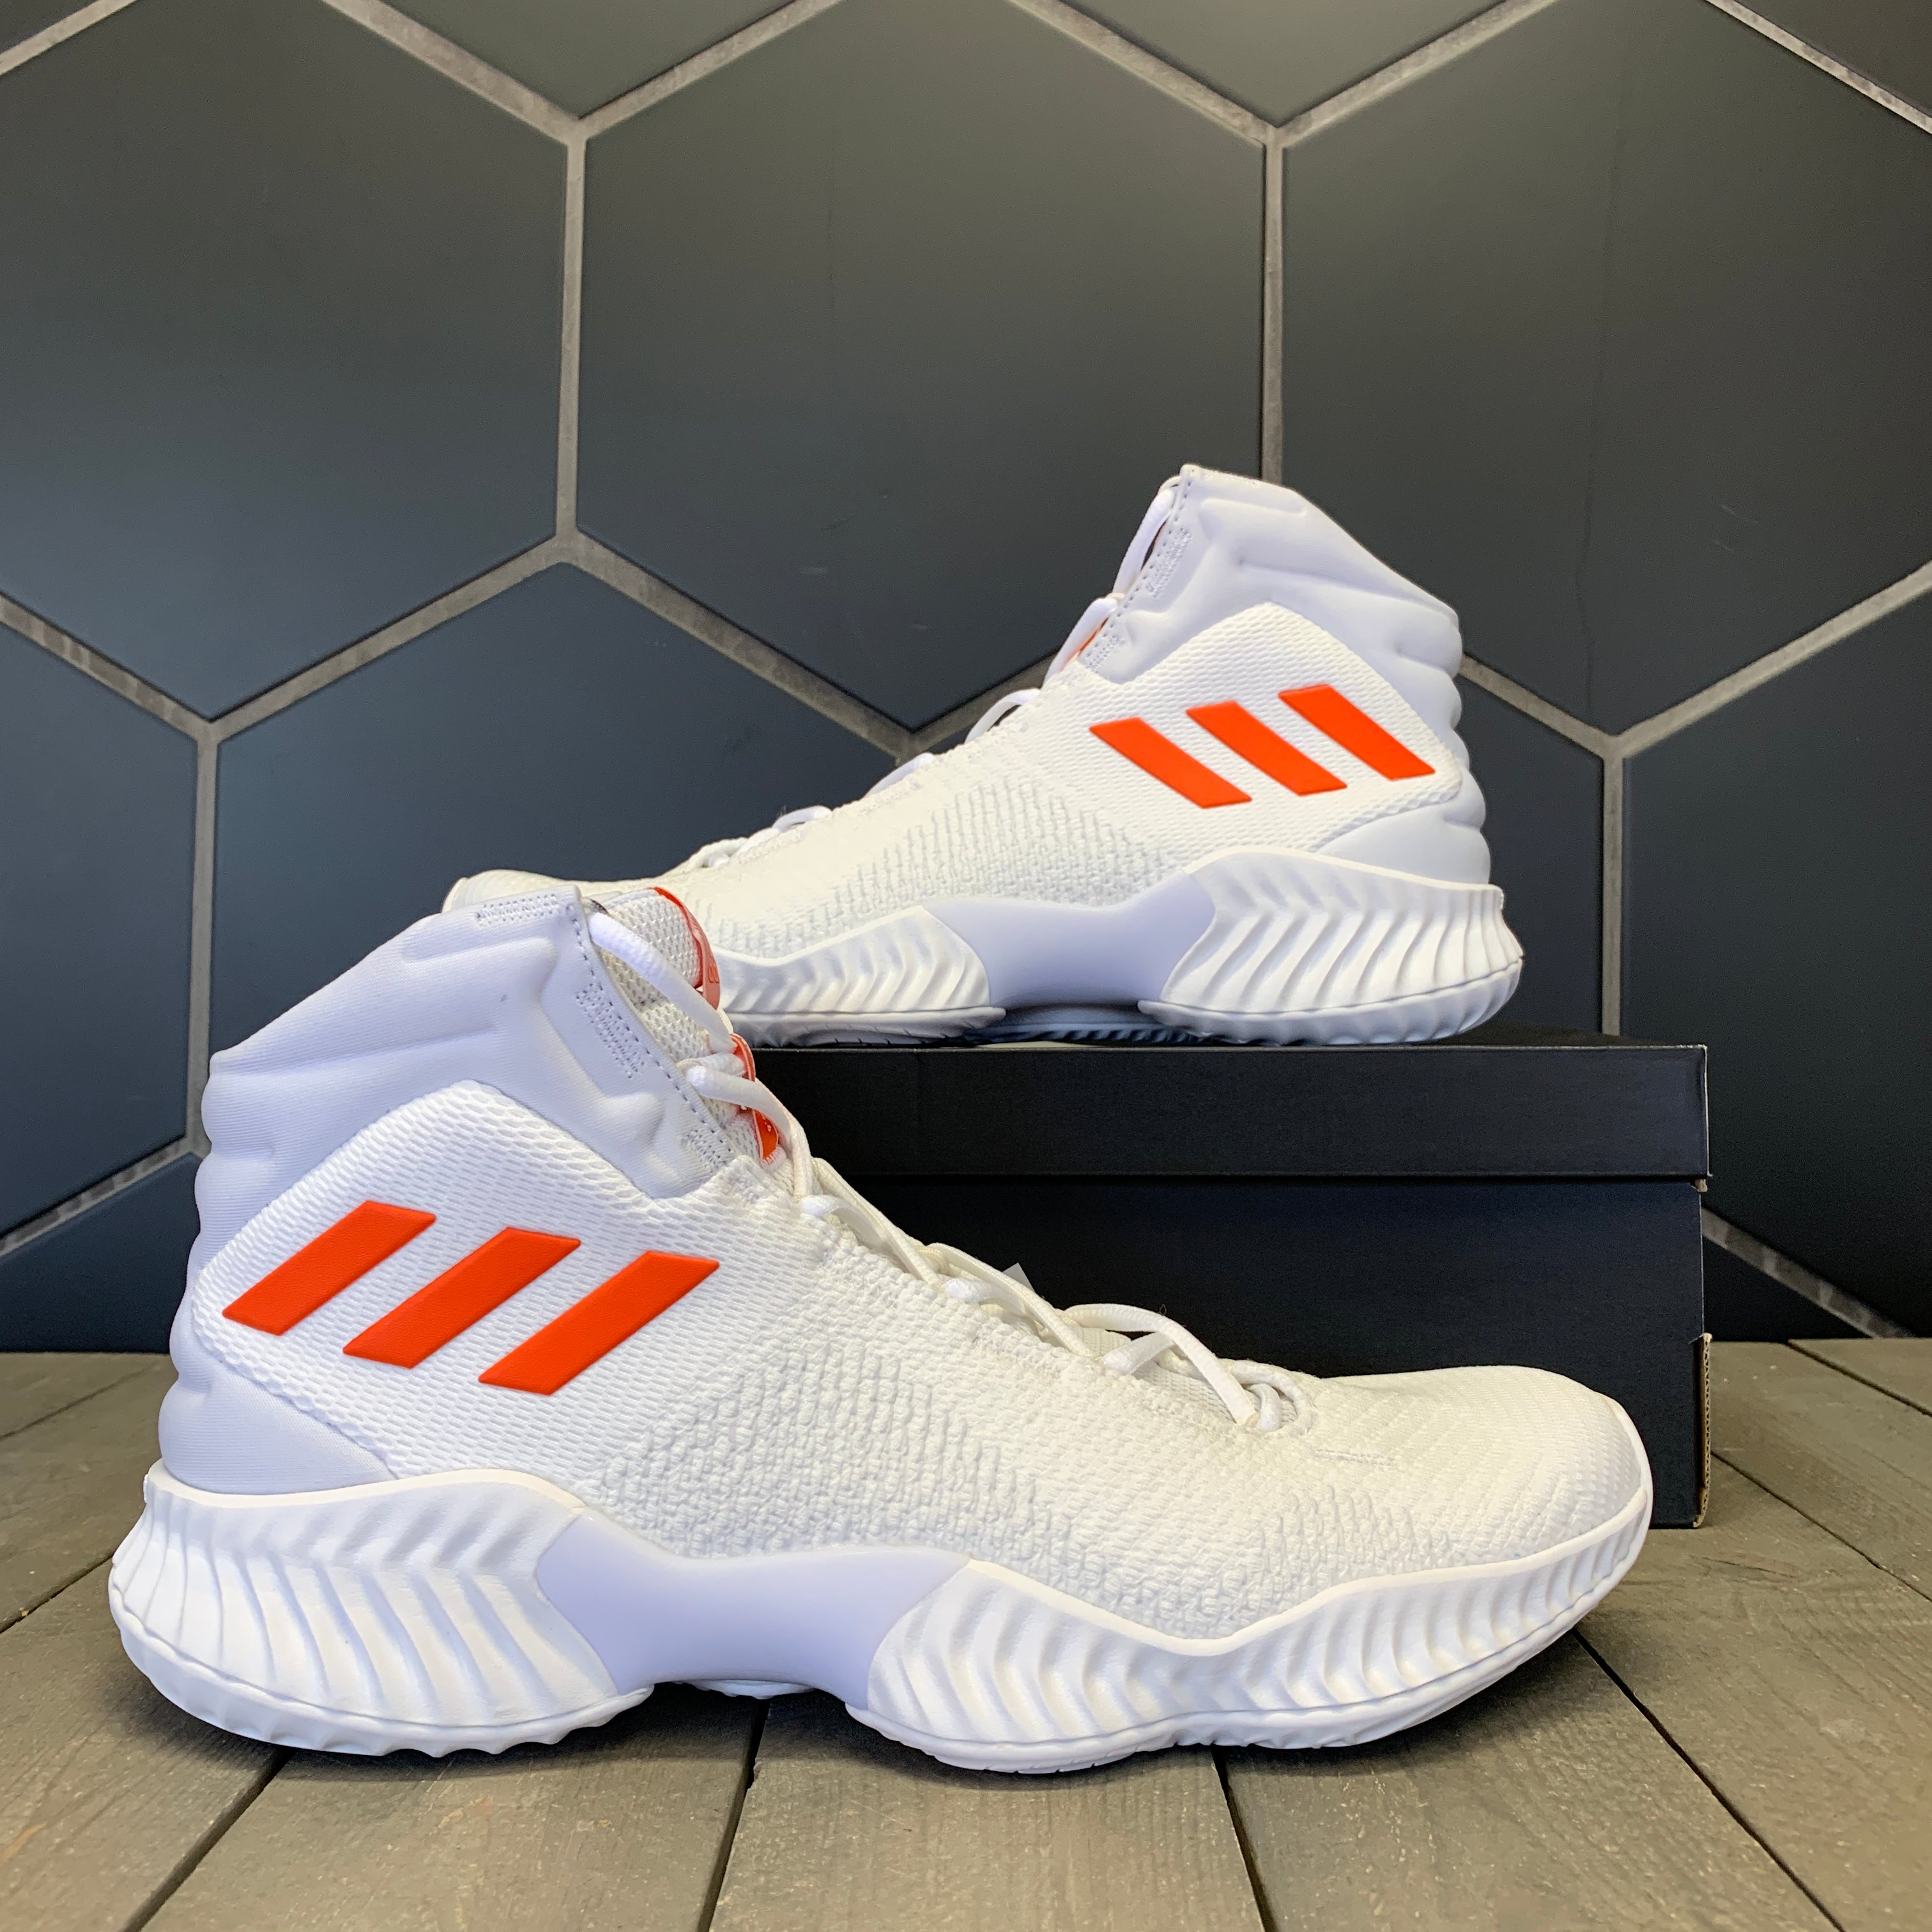 New W/ Box! Adidas SM Pro Bounce 2018 Team White Orange Basketball Shoe Size 12.5